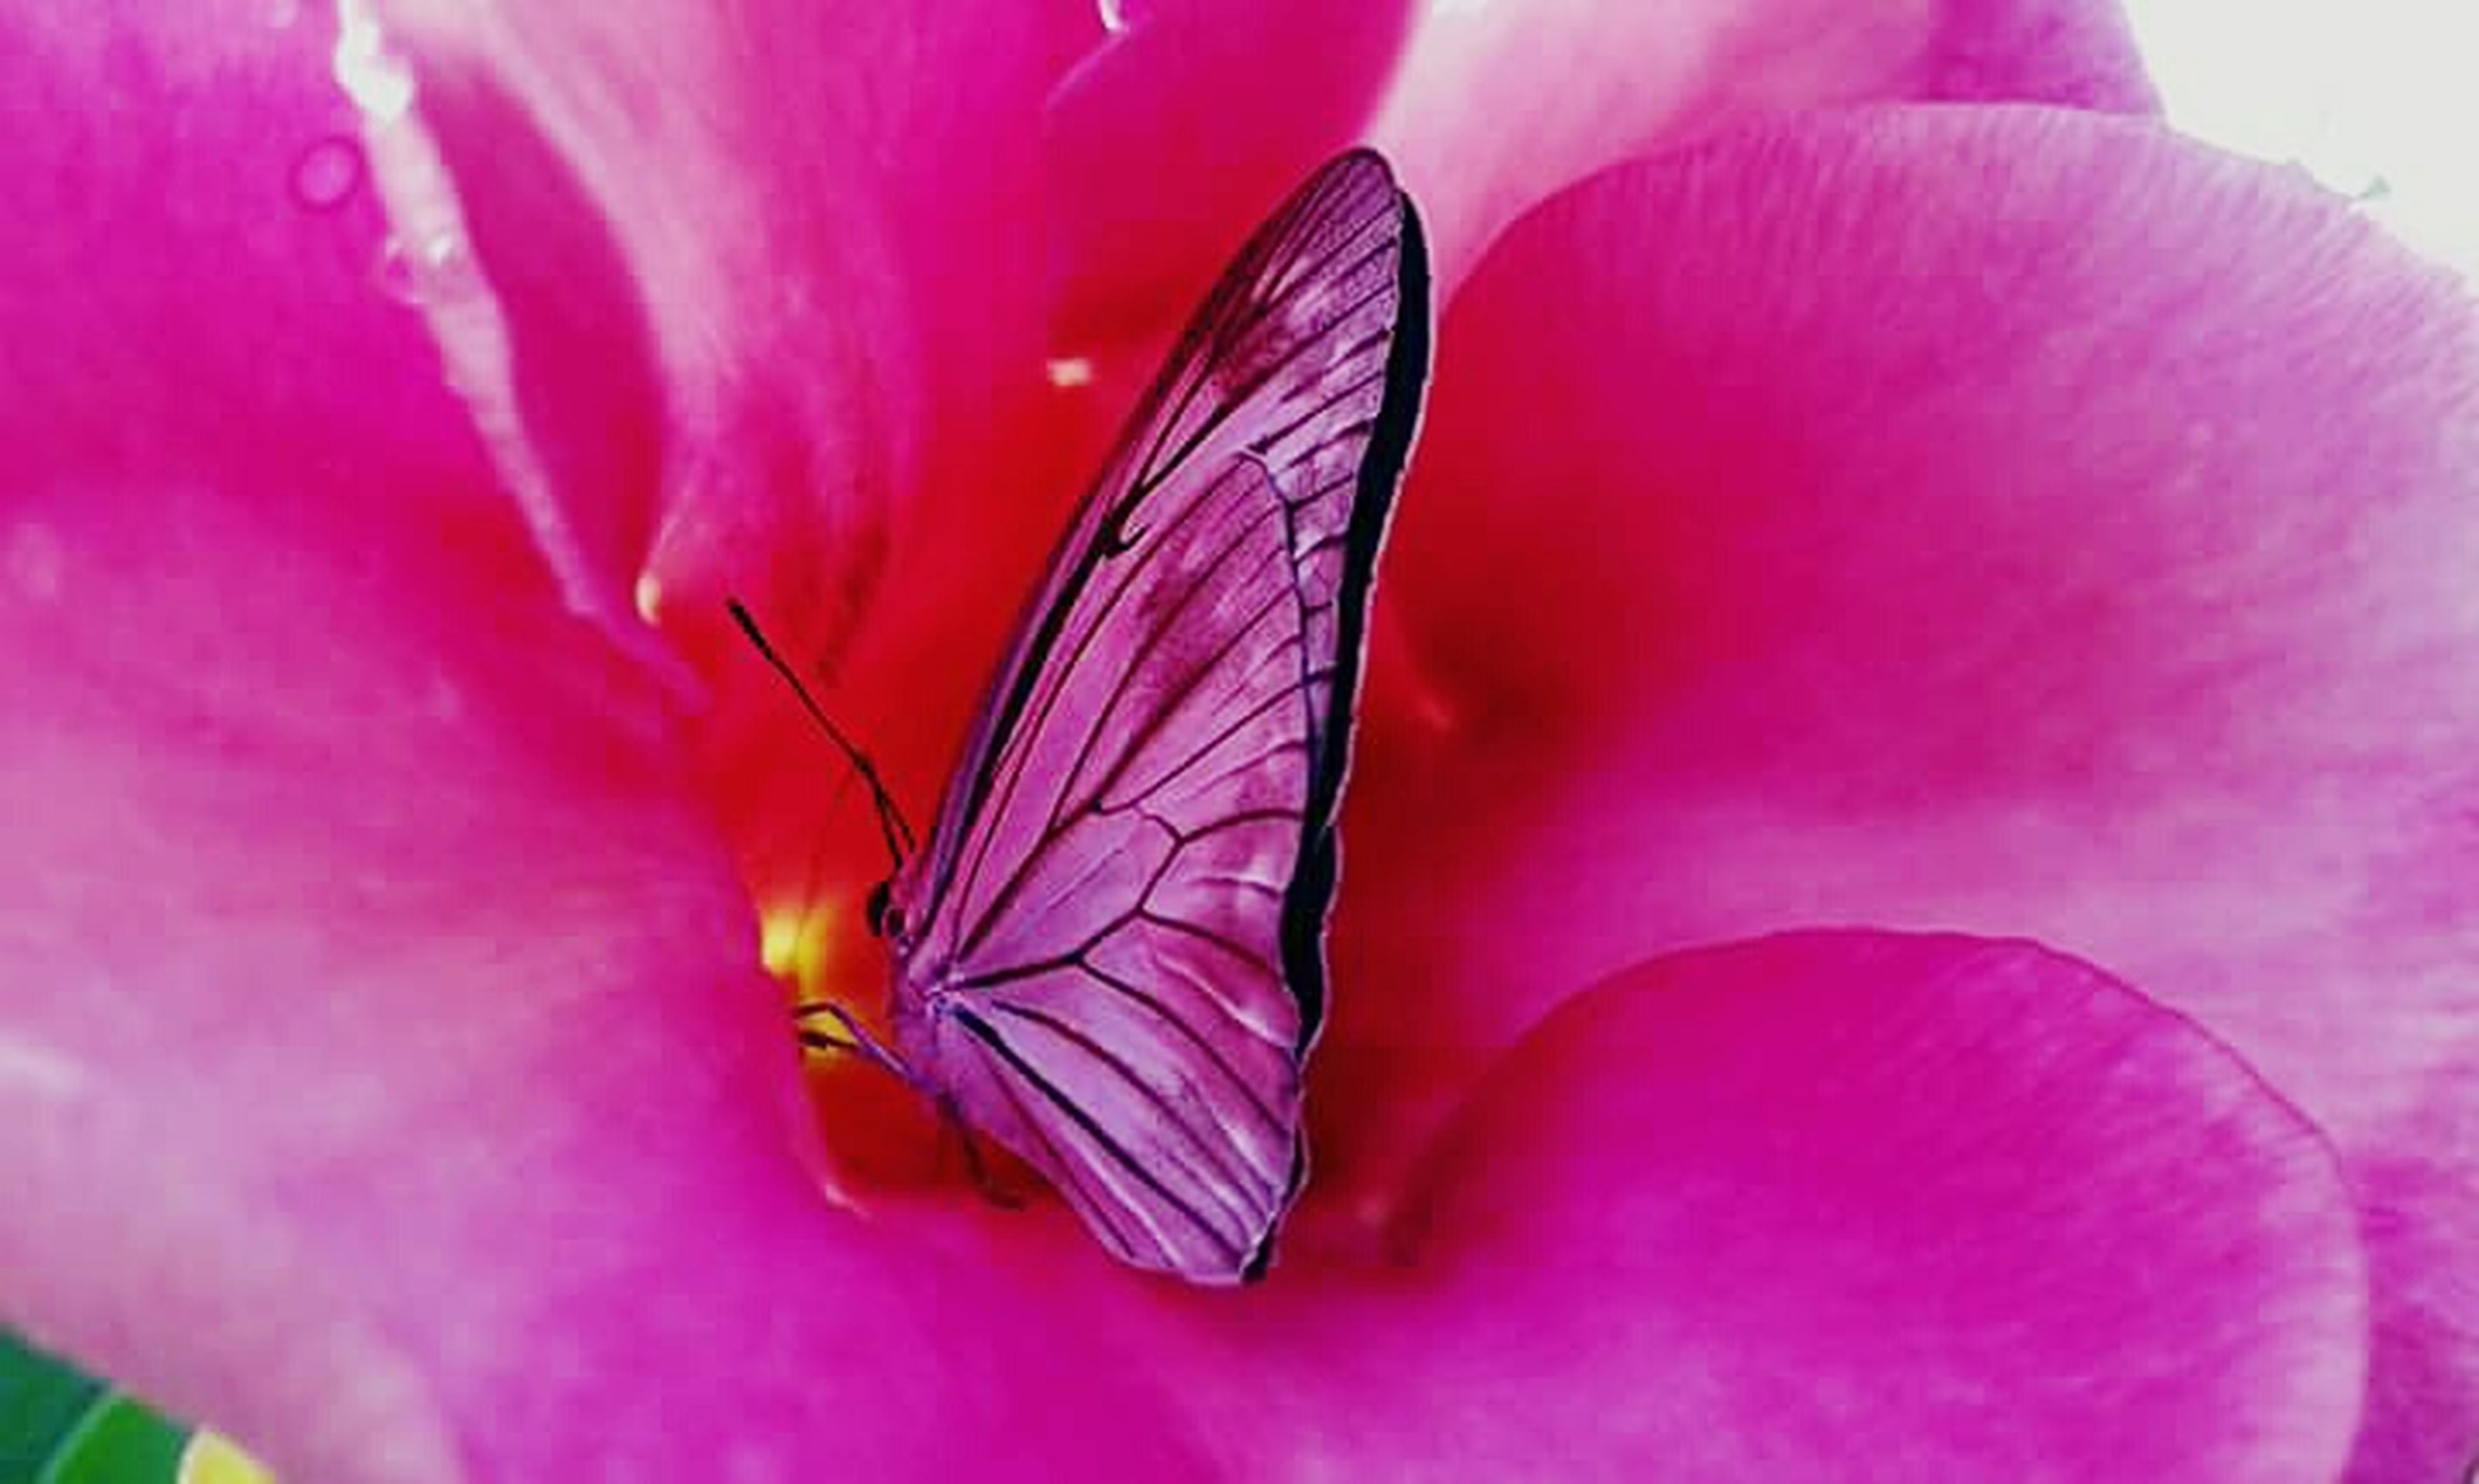 flower, one animal, insect, animals in the wild, animal themes, wildlife, petal, fragility, pink color, beauty in nature, freshness, close-up, flower head, nature, butterfly, butterfly - insect, single flower, growth, pollination, natural pattern